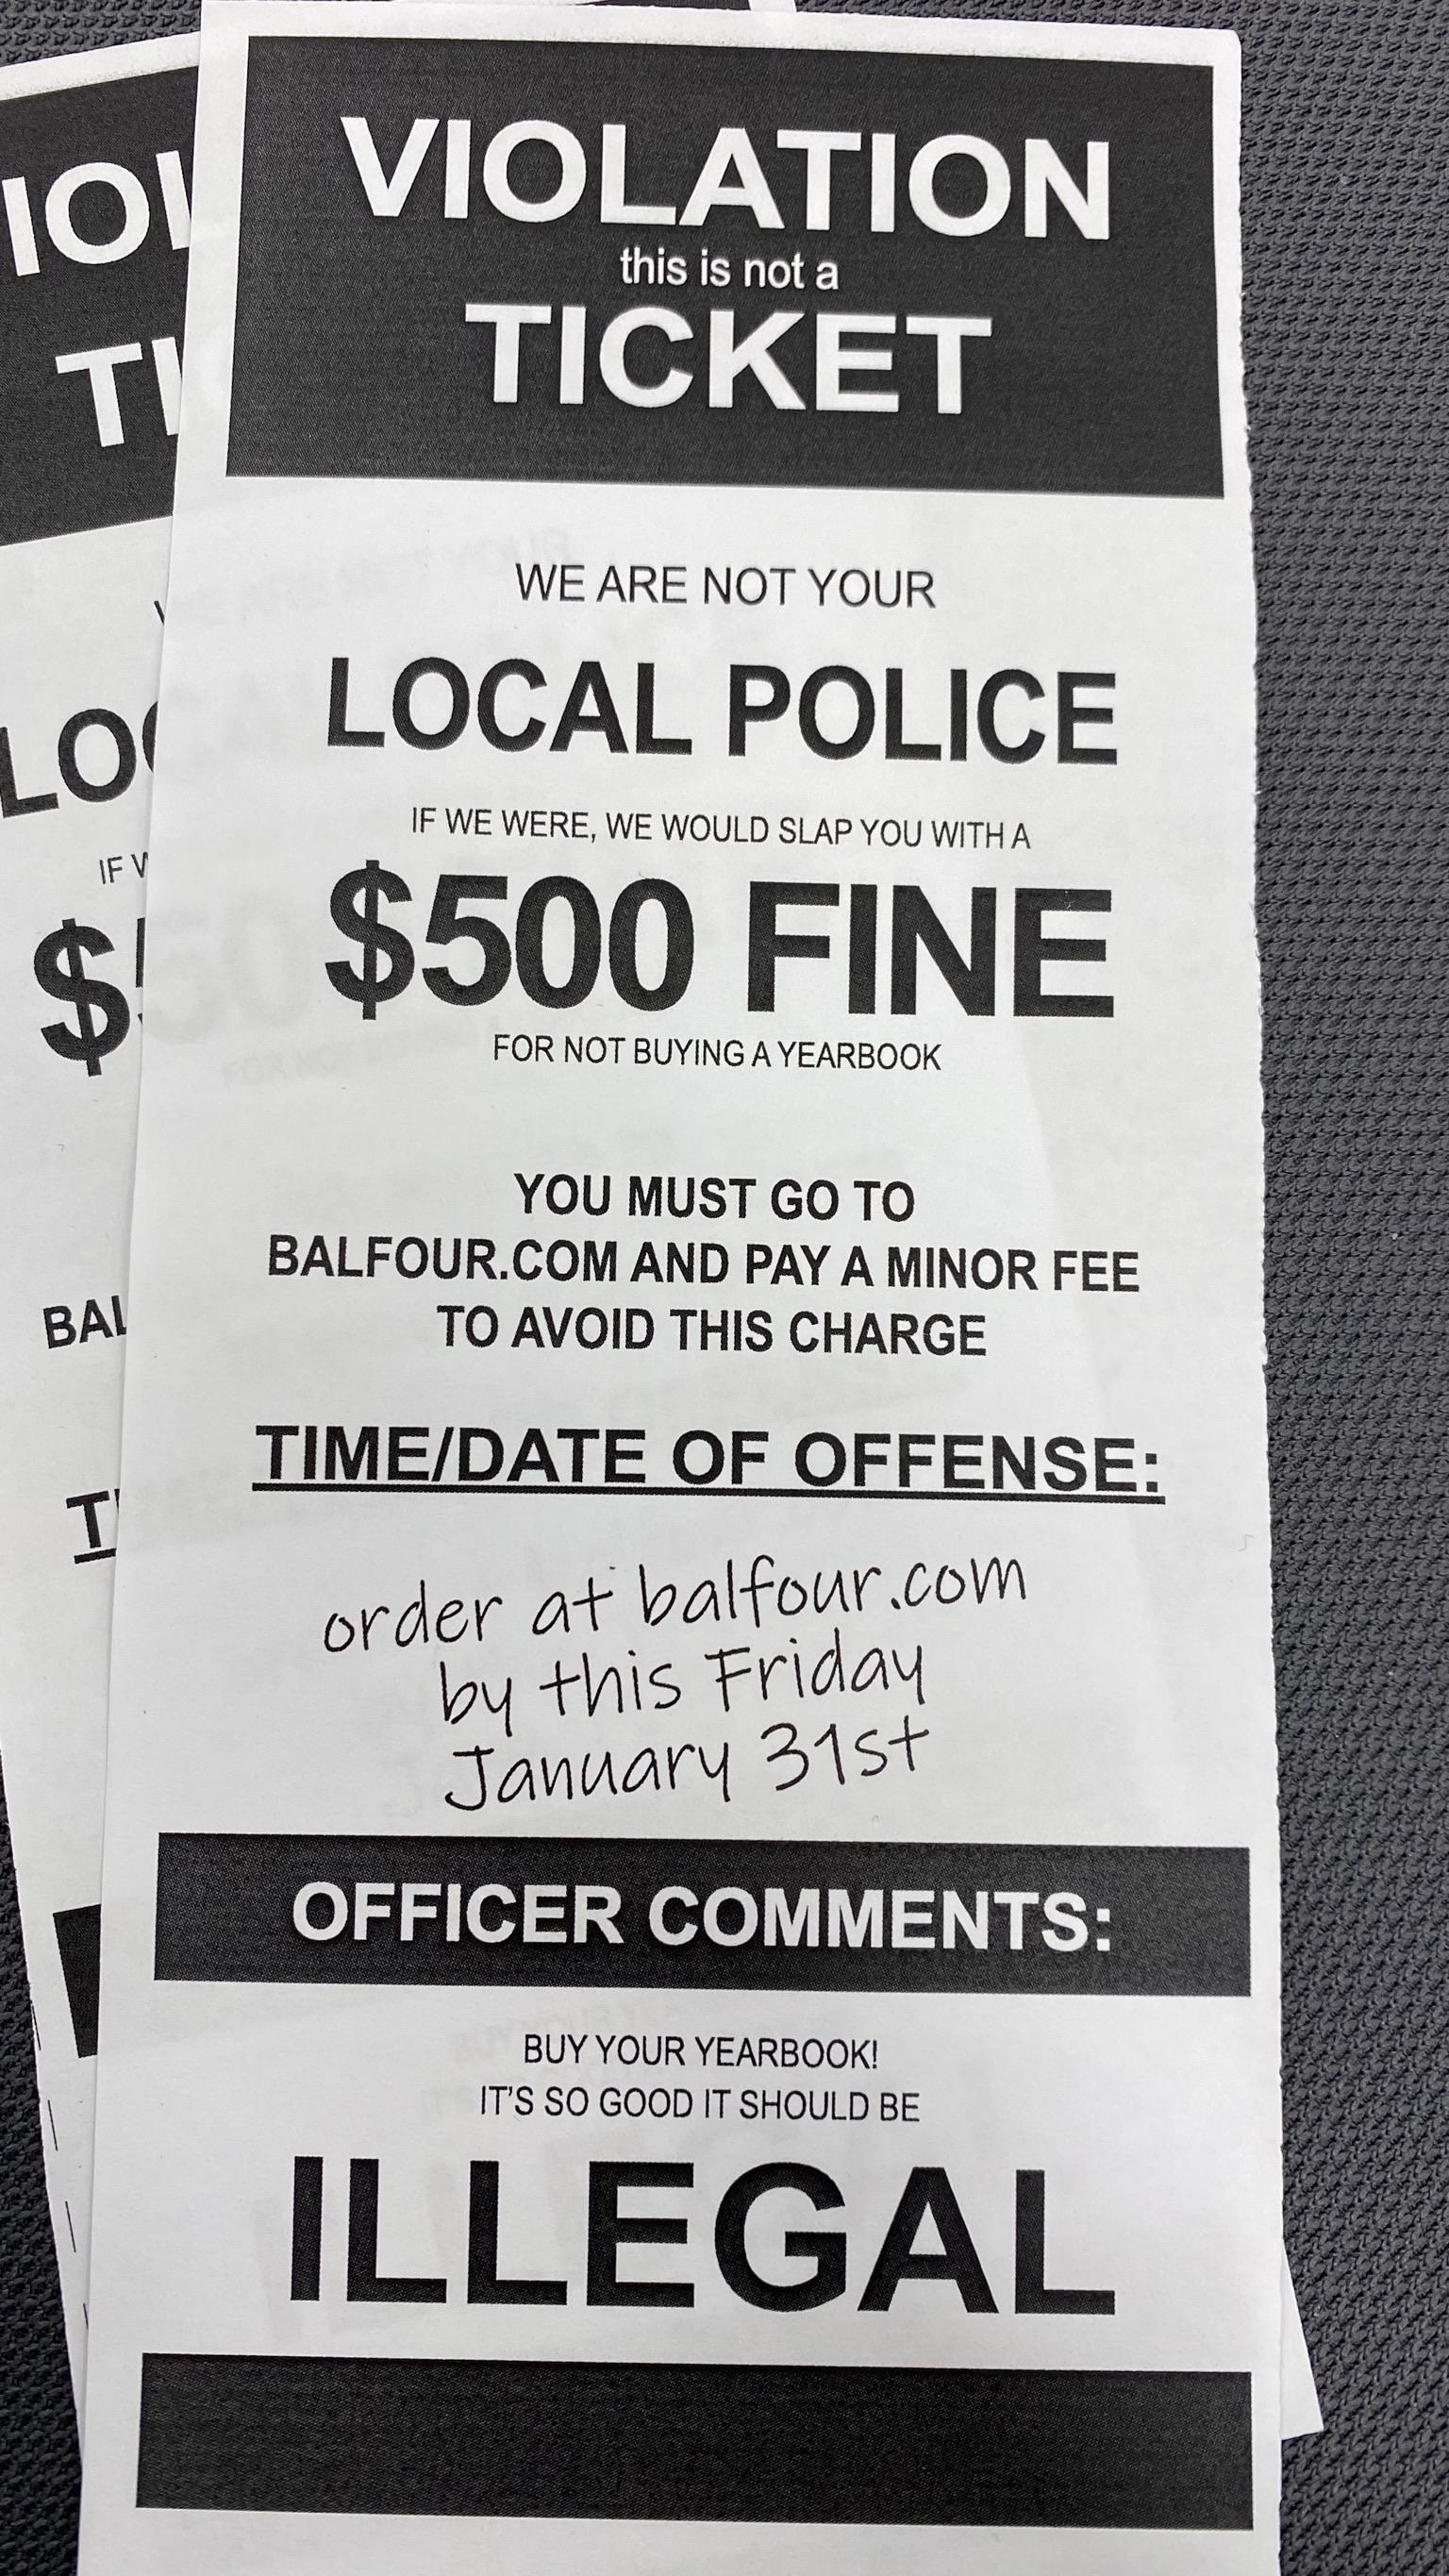 A piece of paper advertising for students to buy a yearbook that is made to look like a parking ticket